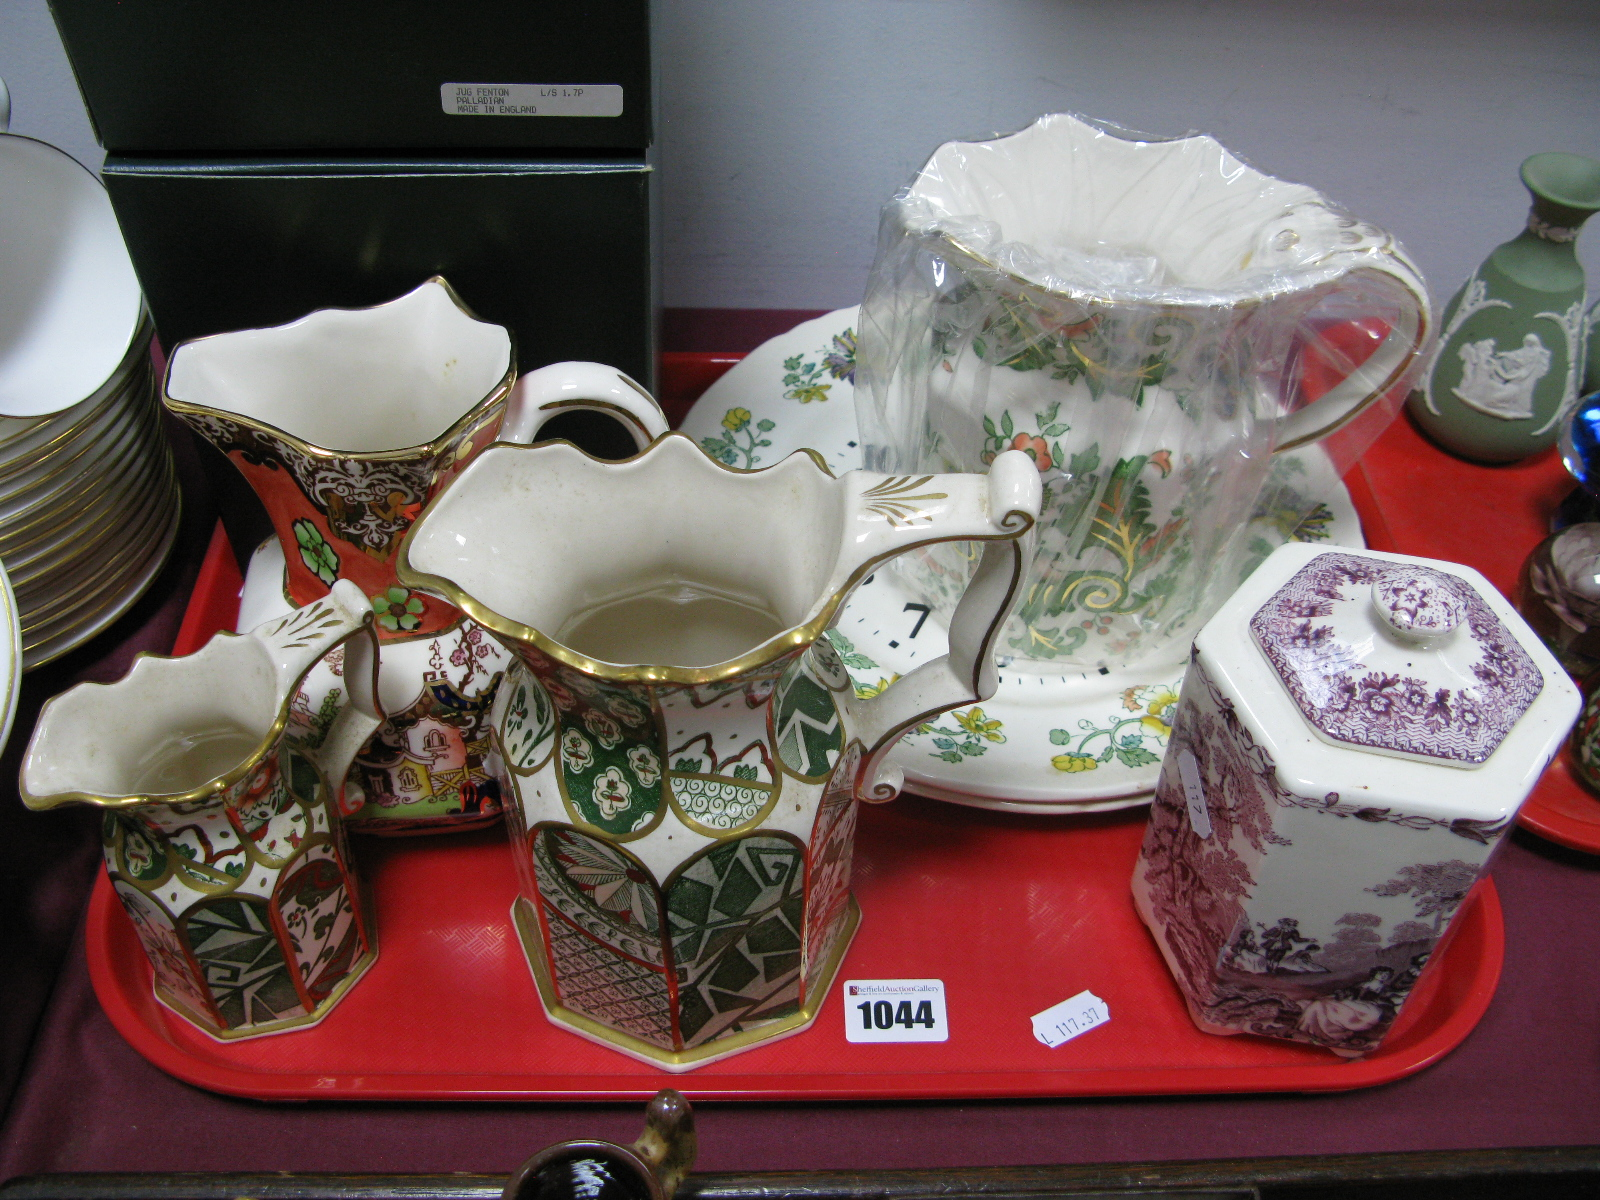 Lot 1044 - Mason's Ironstone 'Palladian' and 'Oriental Garden' Jugs, from the collectable jugs series (both